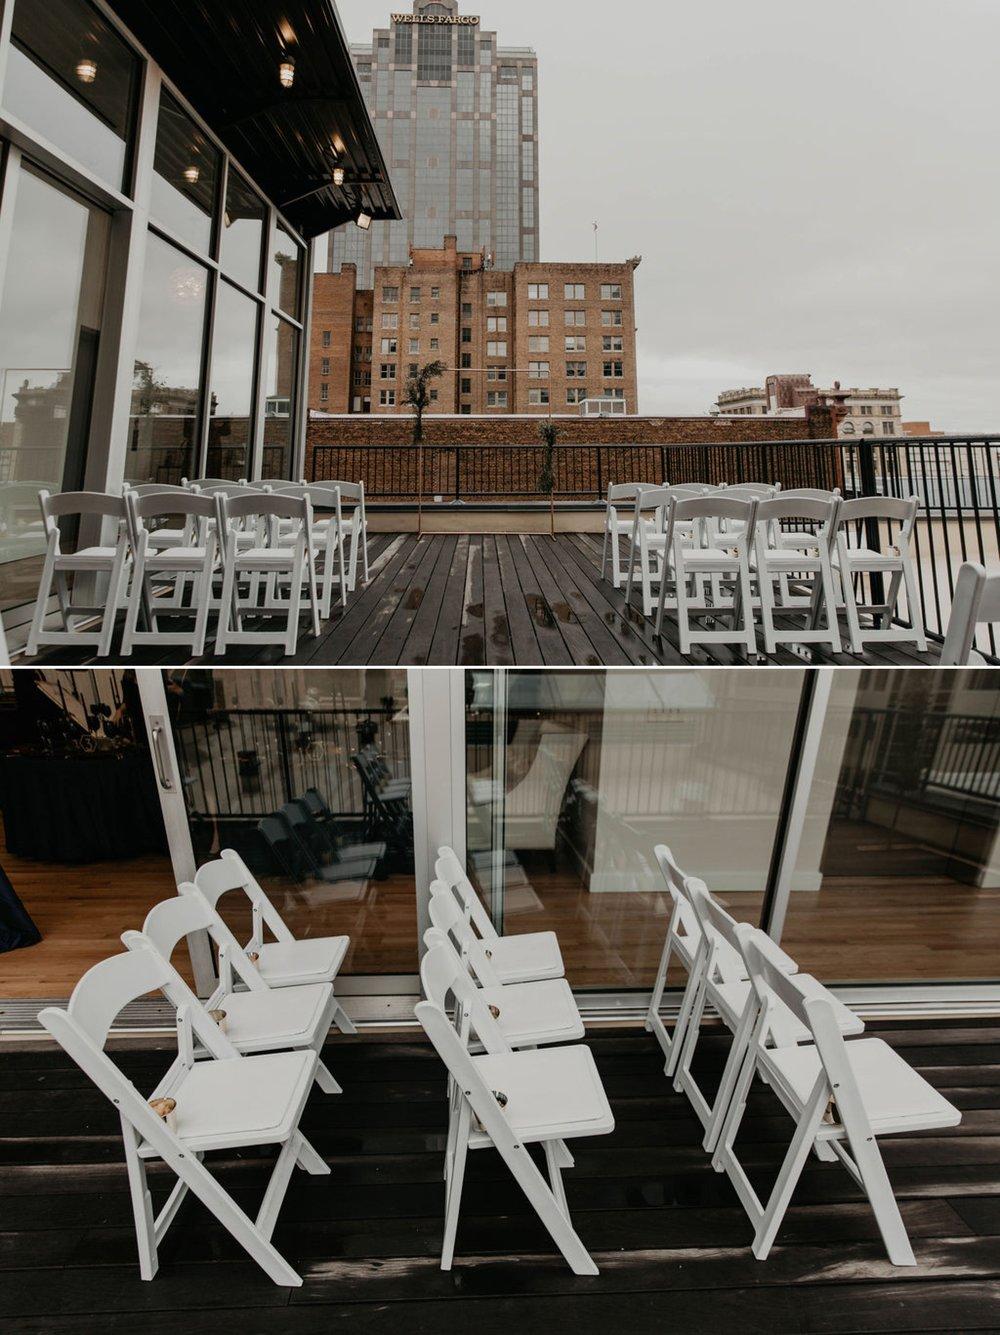 Wedding Ceremony Details on a rooftop terrace with the skyline in the background - Matt Smarsh and Johanna Dye - Raleigh North Carolina Urban Downtown Wedding at the Glass Box at 230